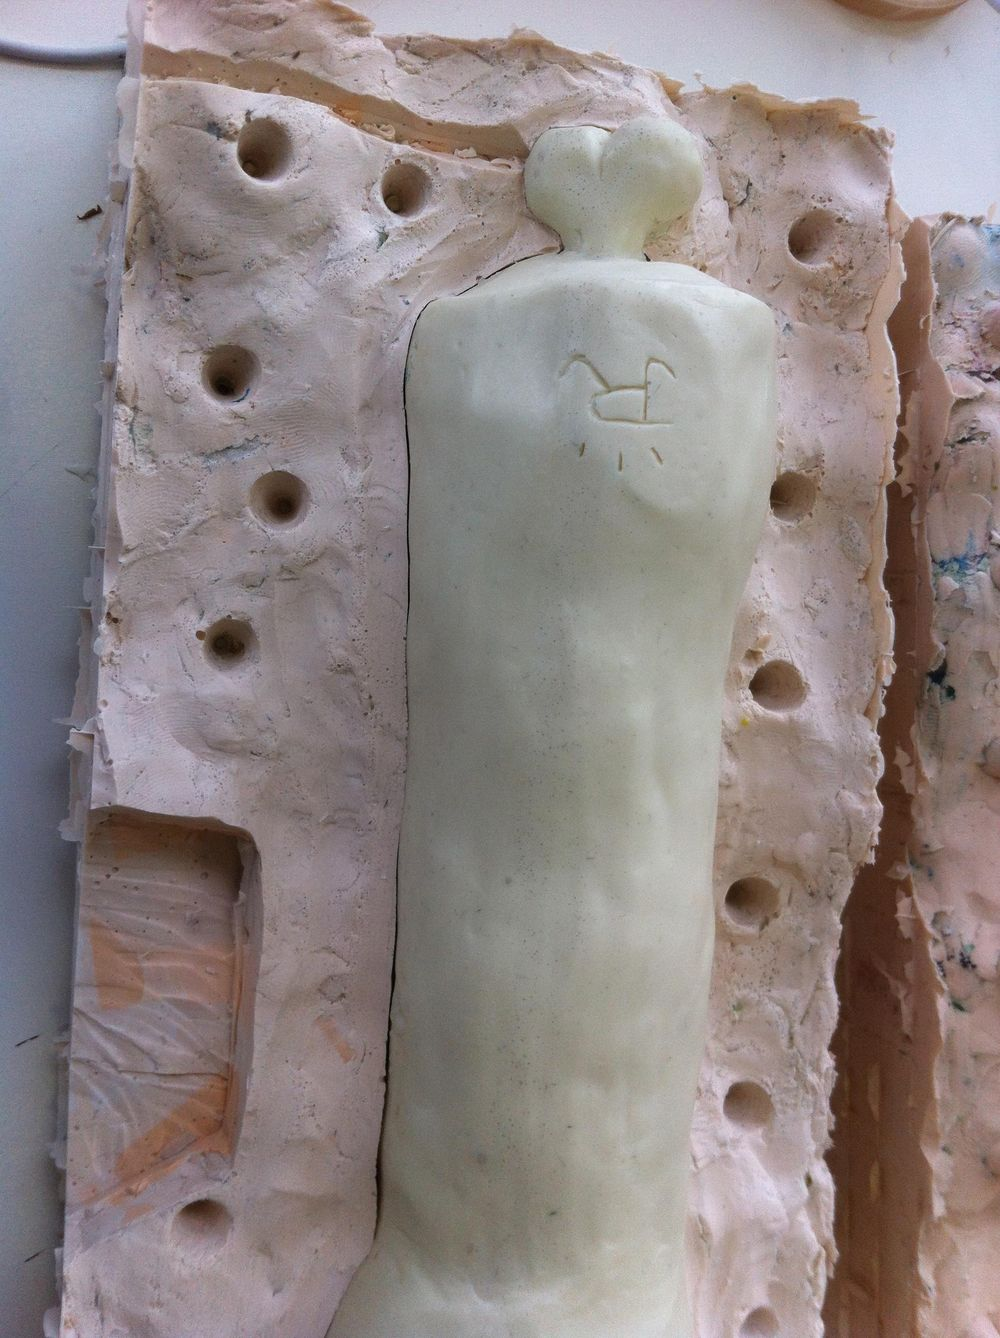 'Half Eaten Resin Arm Toy'  James Rae - image 5 - student project